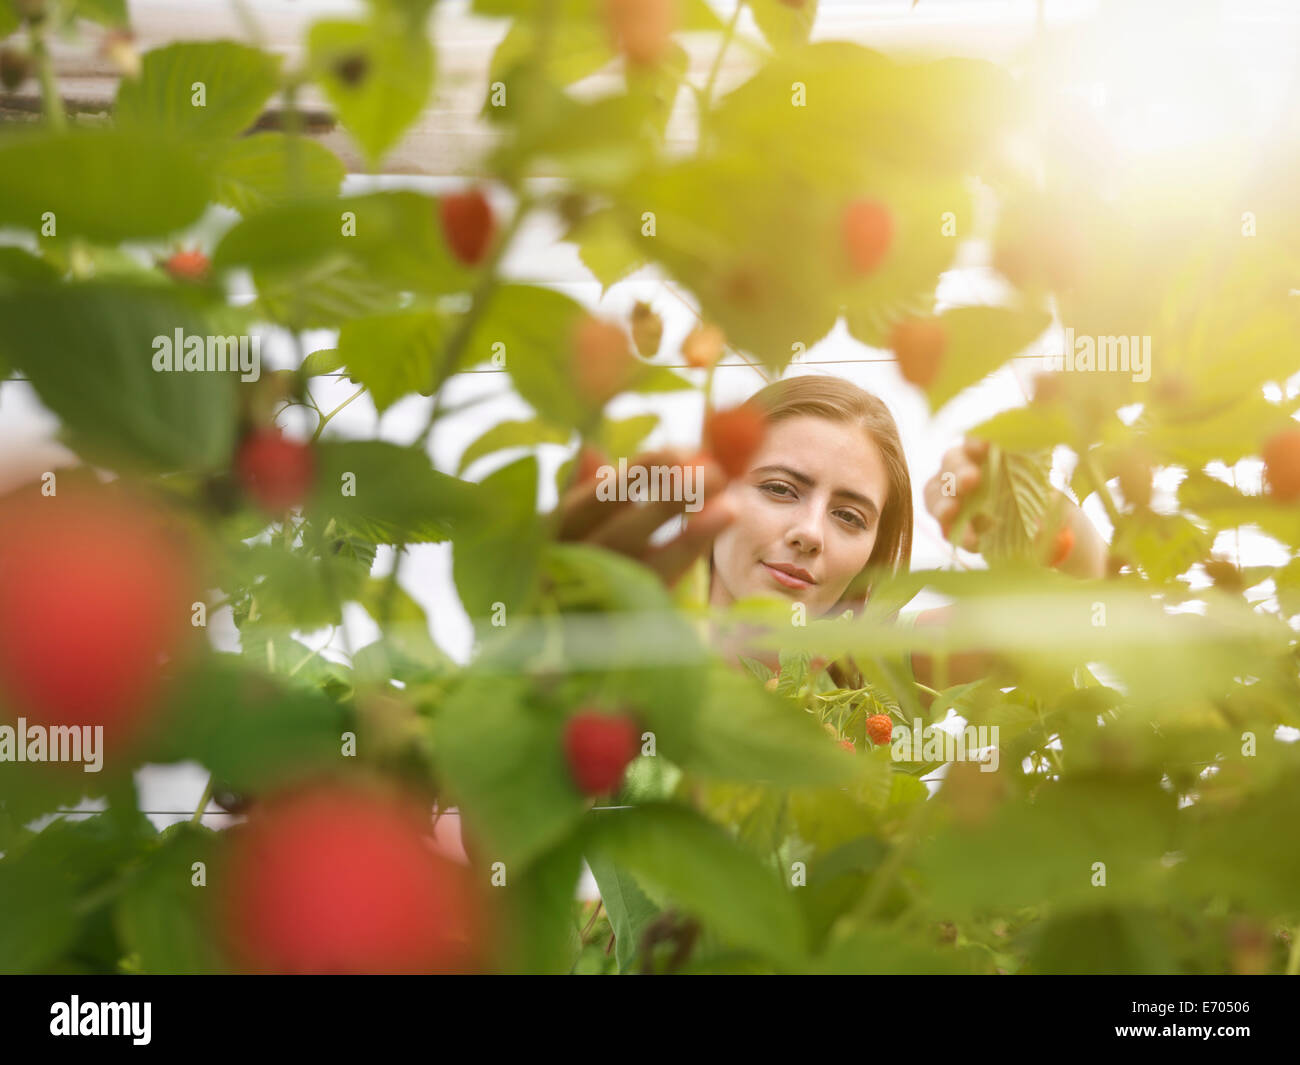 Worker picking raspberries in fruit farm - Stock Image